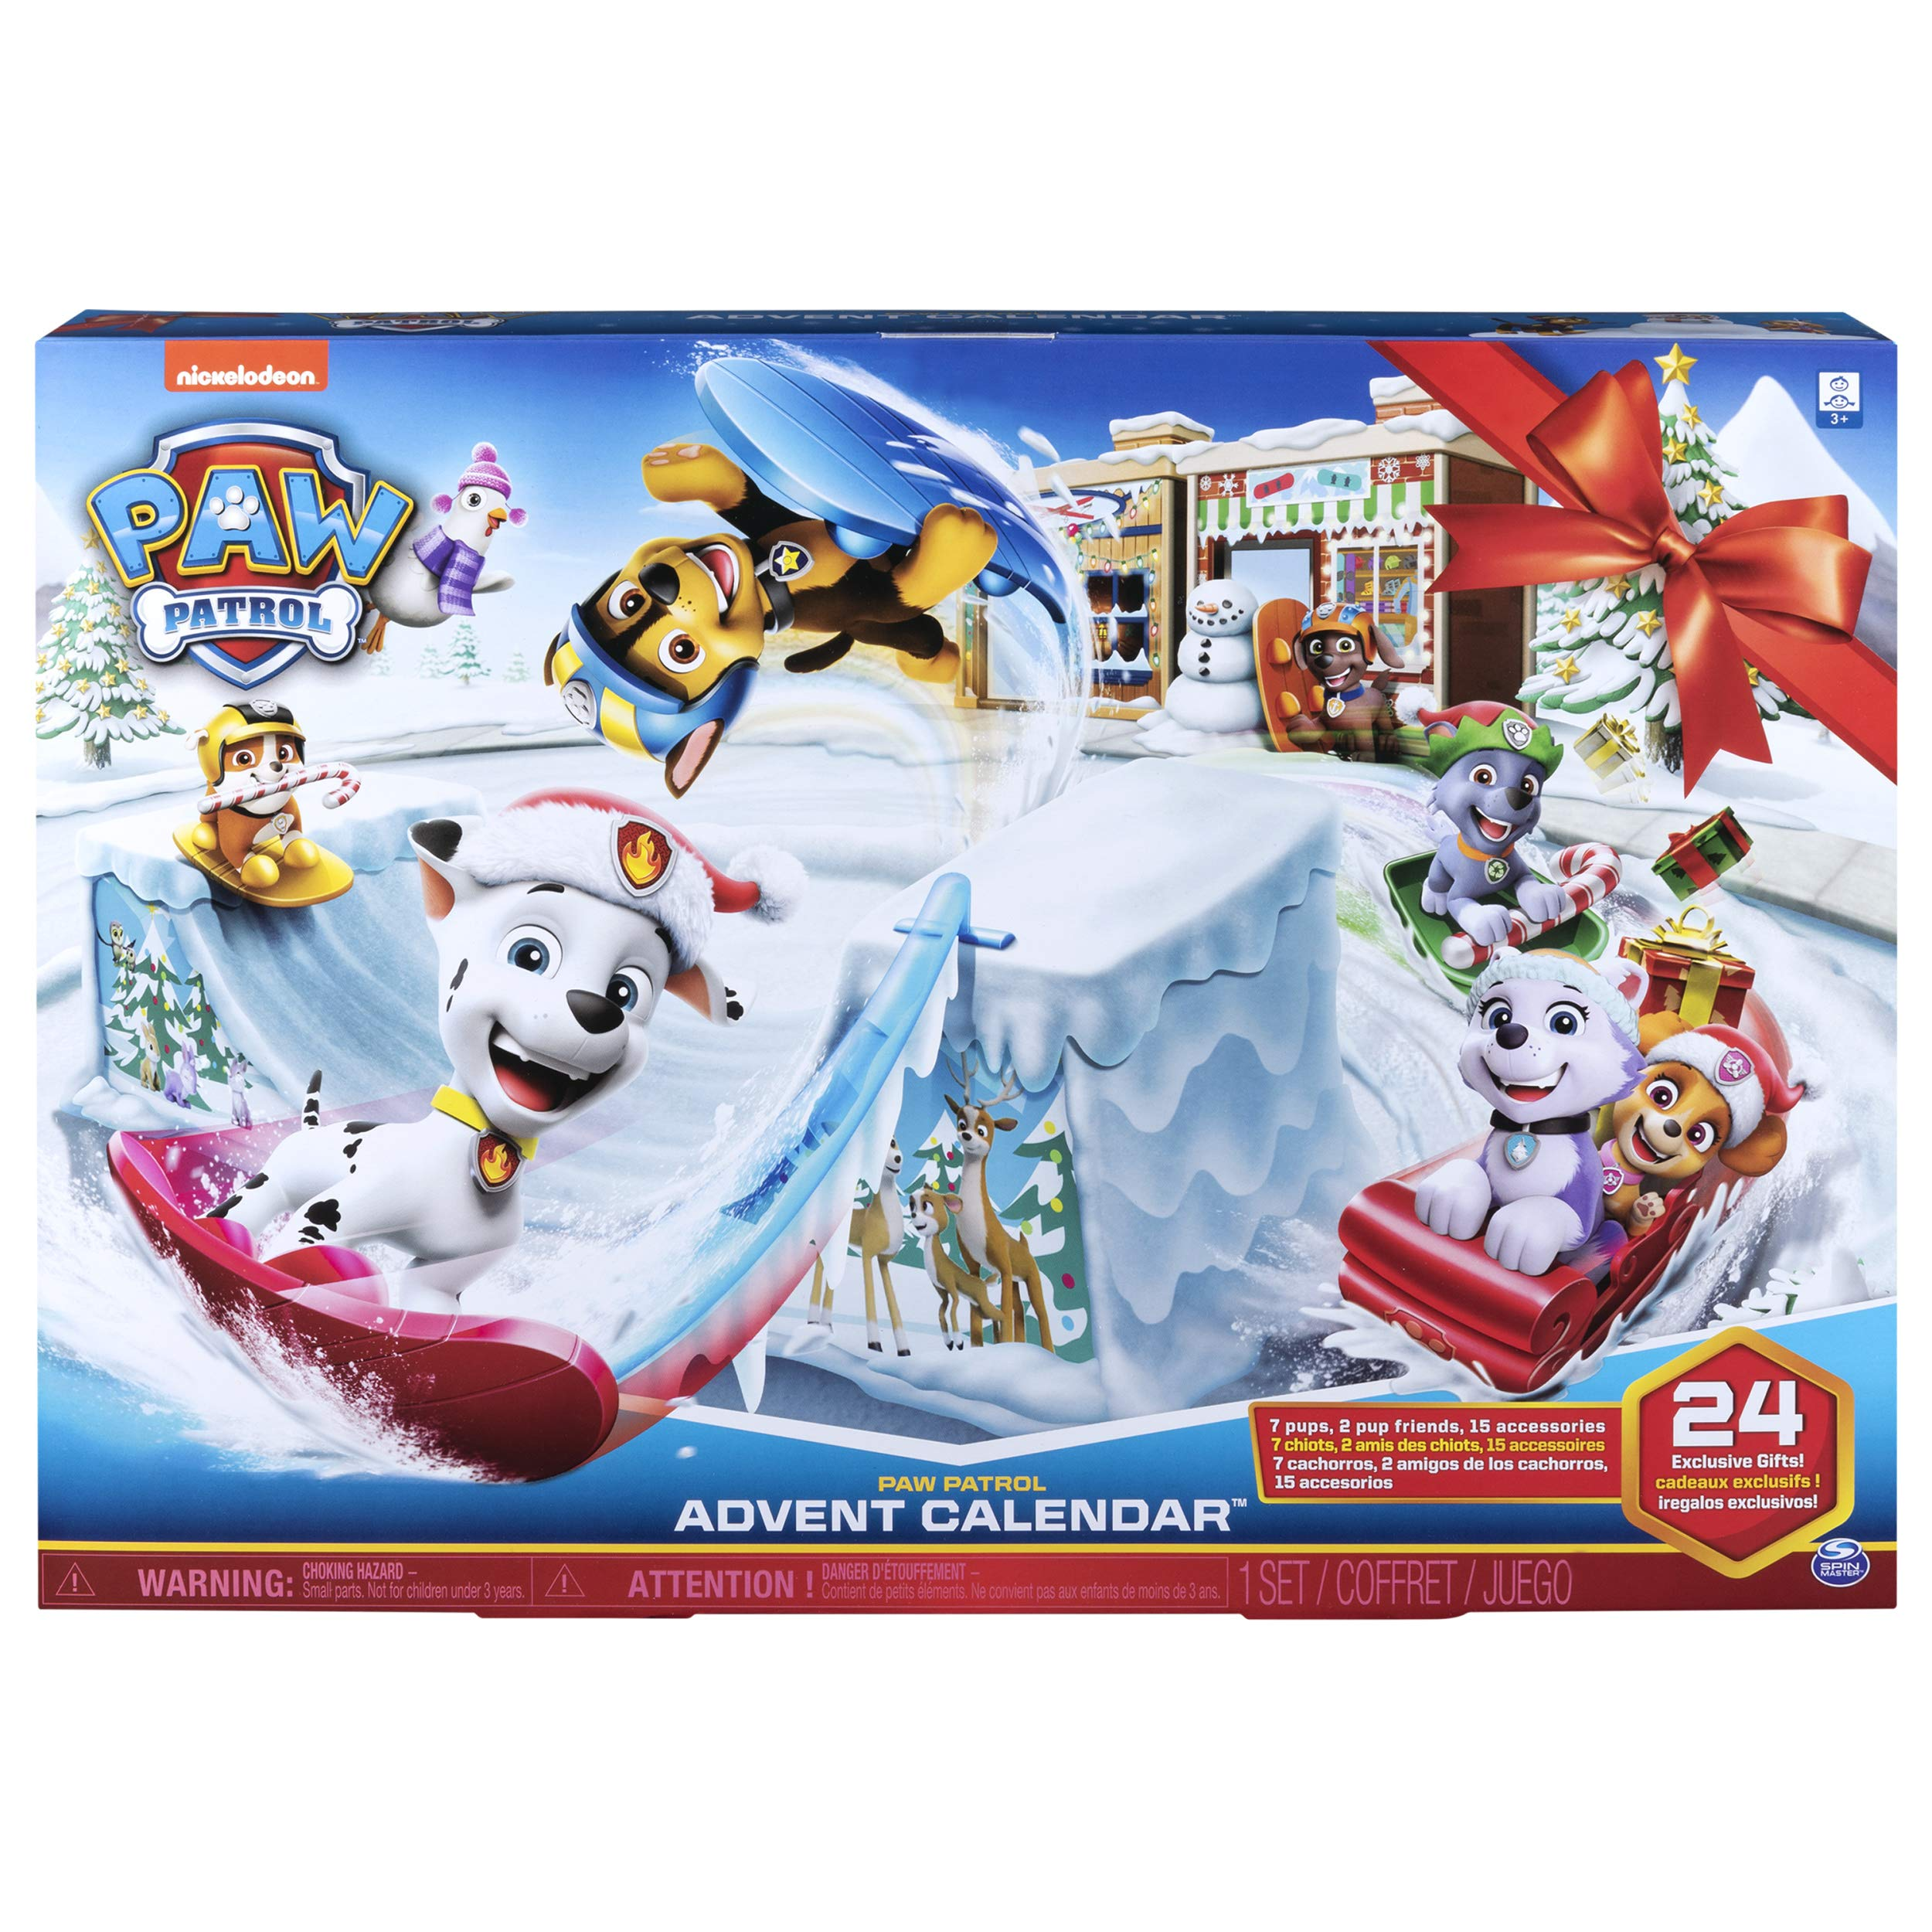 Paw Patrol – 2019 Advent Calendar Release – Includes 24 Gifts to Explore – Ages 3+